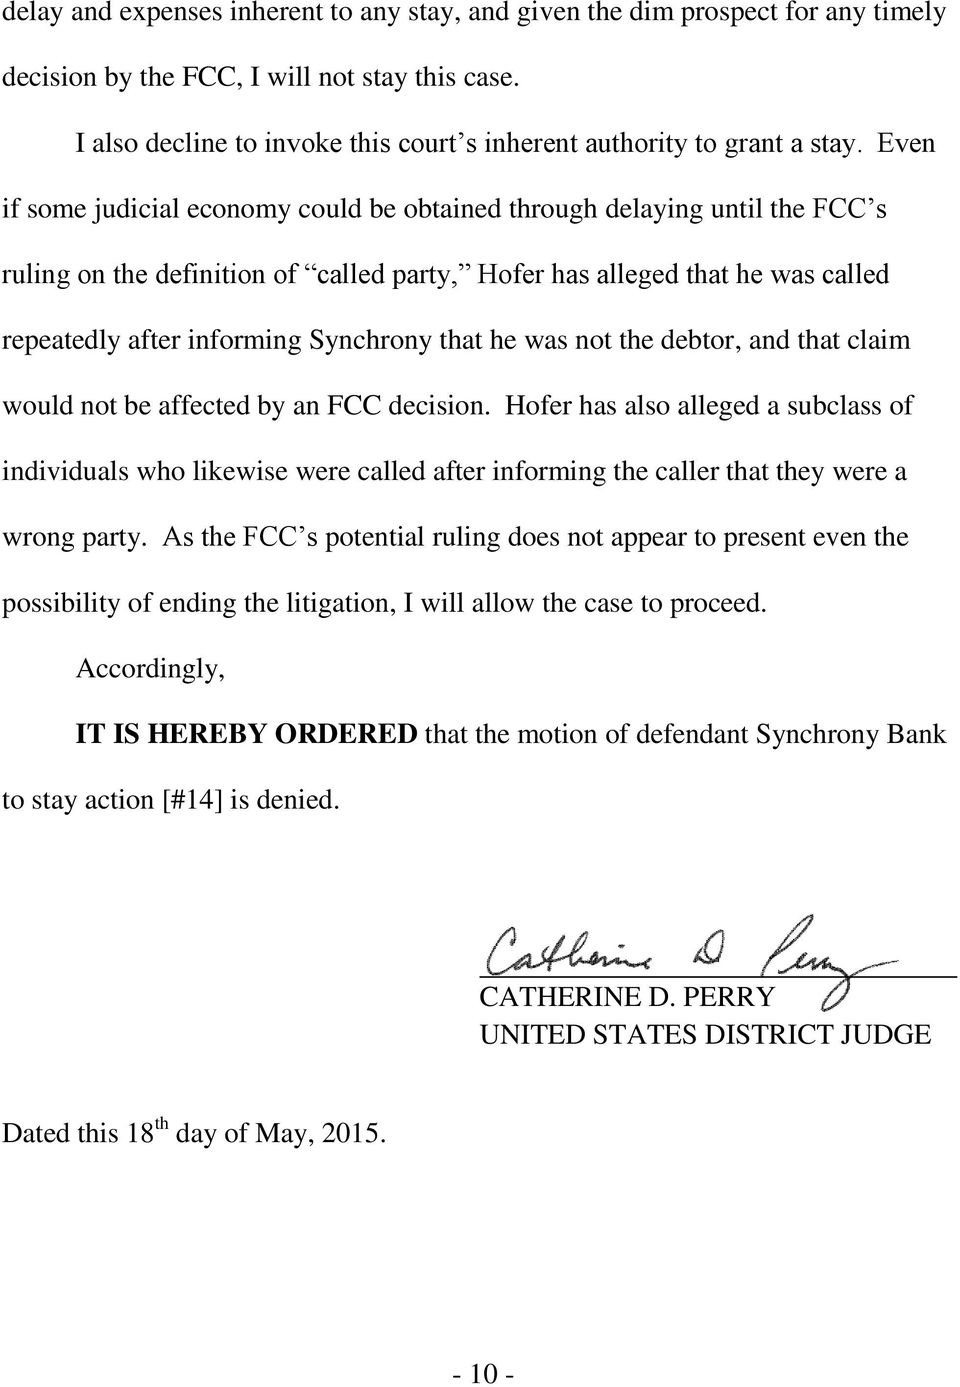 Even if some judicial economy could be obtained through delaying until the FCC s ruling on the definition of called party, Hofer has alleged that he was called repeatedly after informing Synchrony